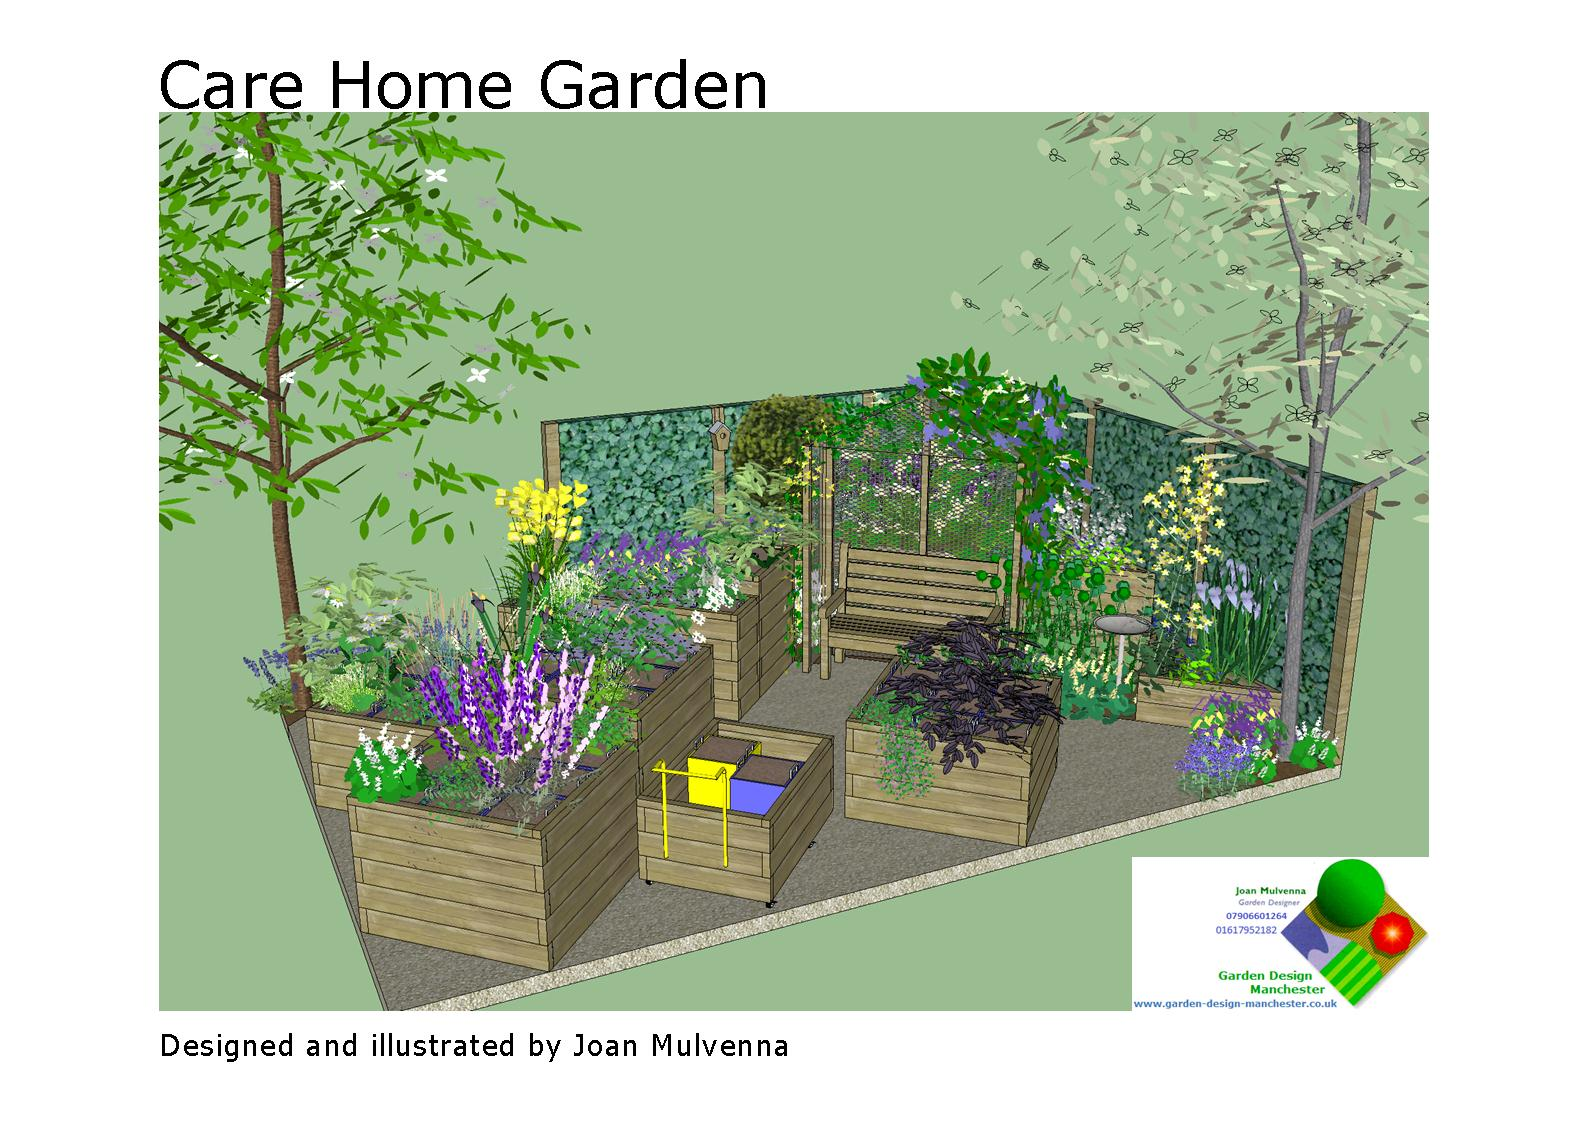 Garden Design Manchester rhs press office